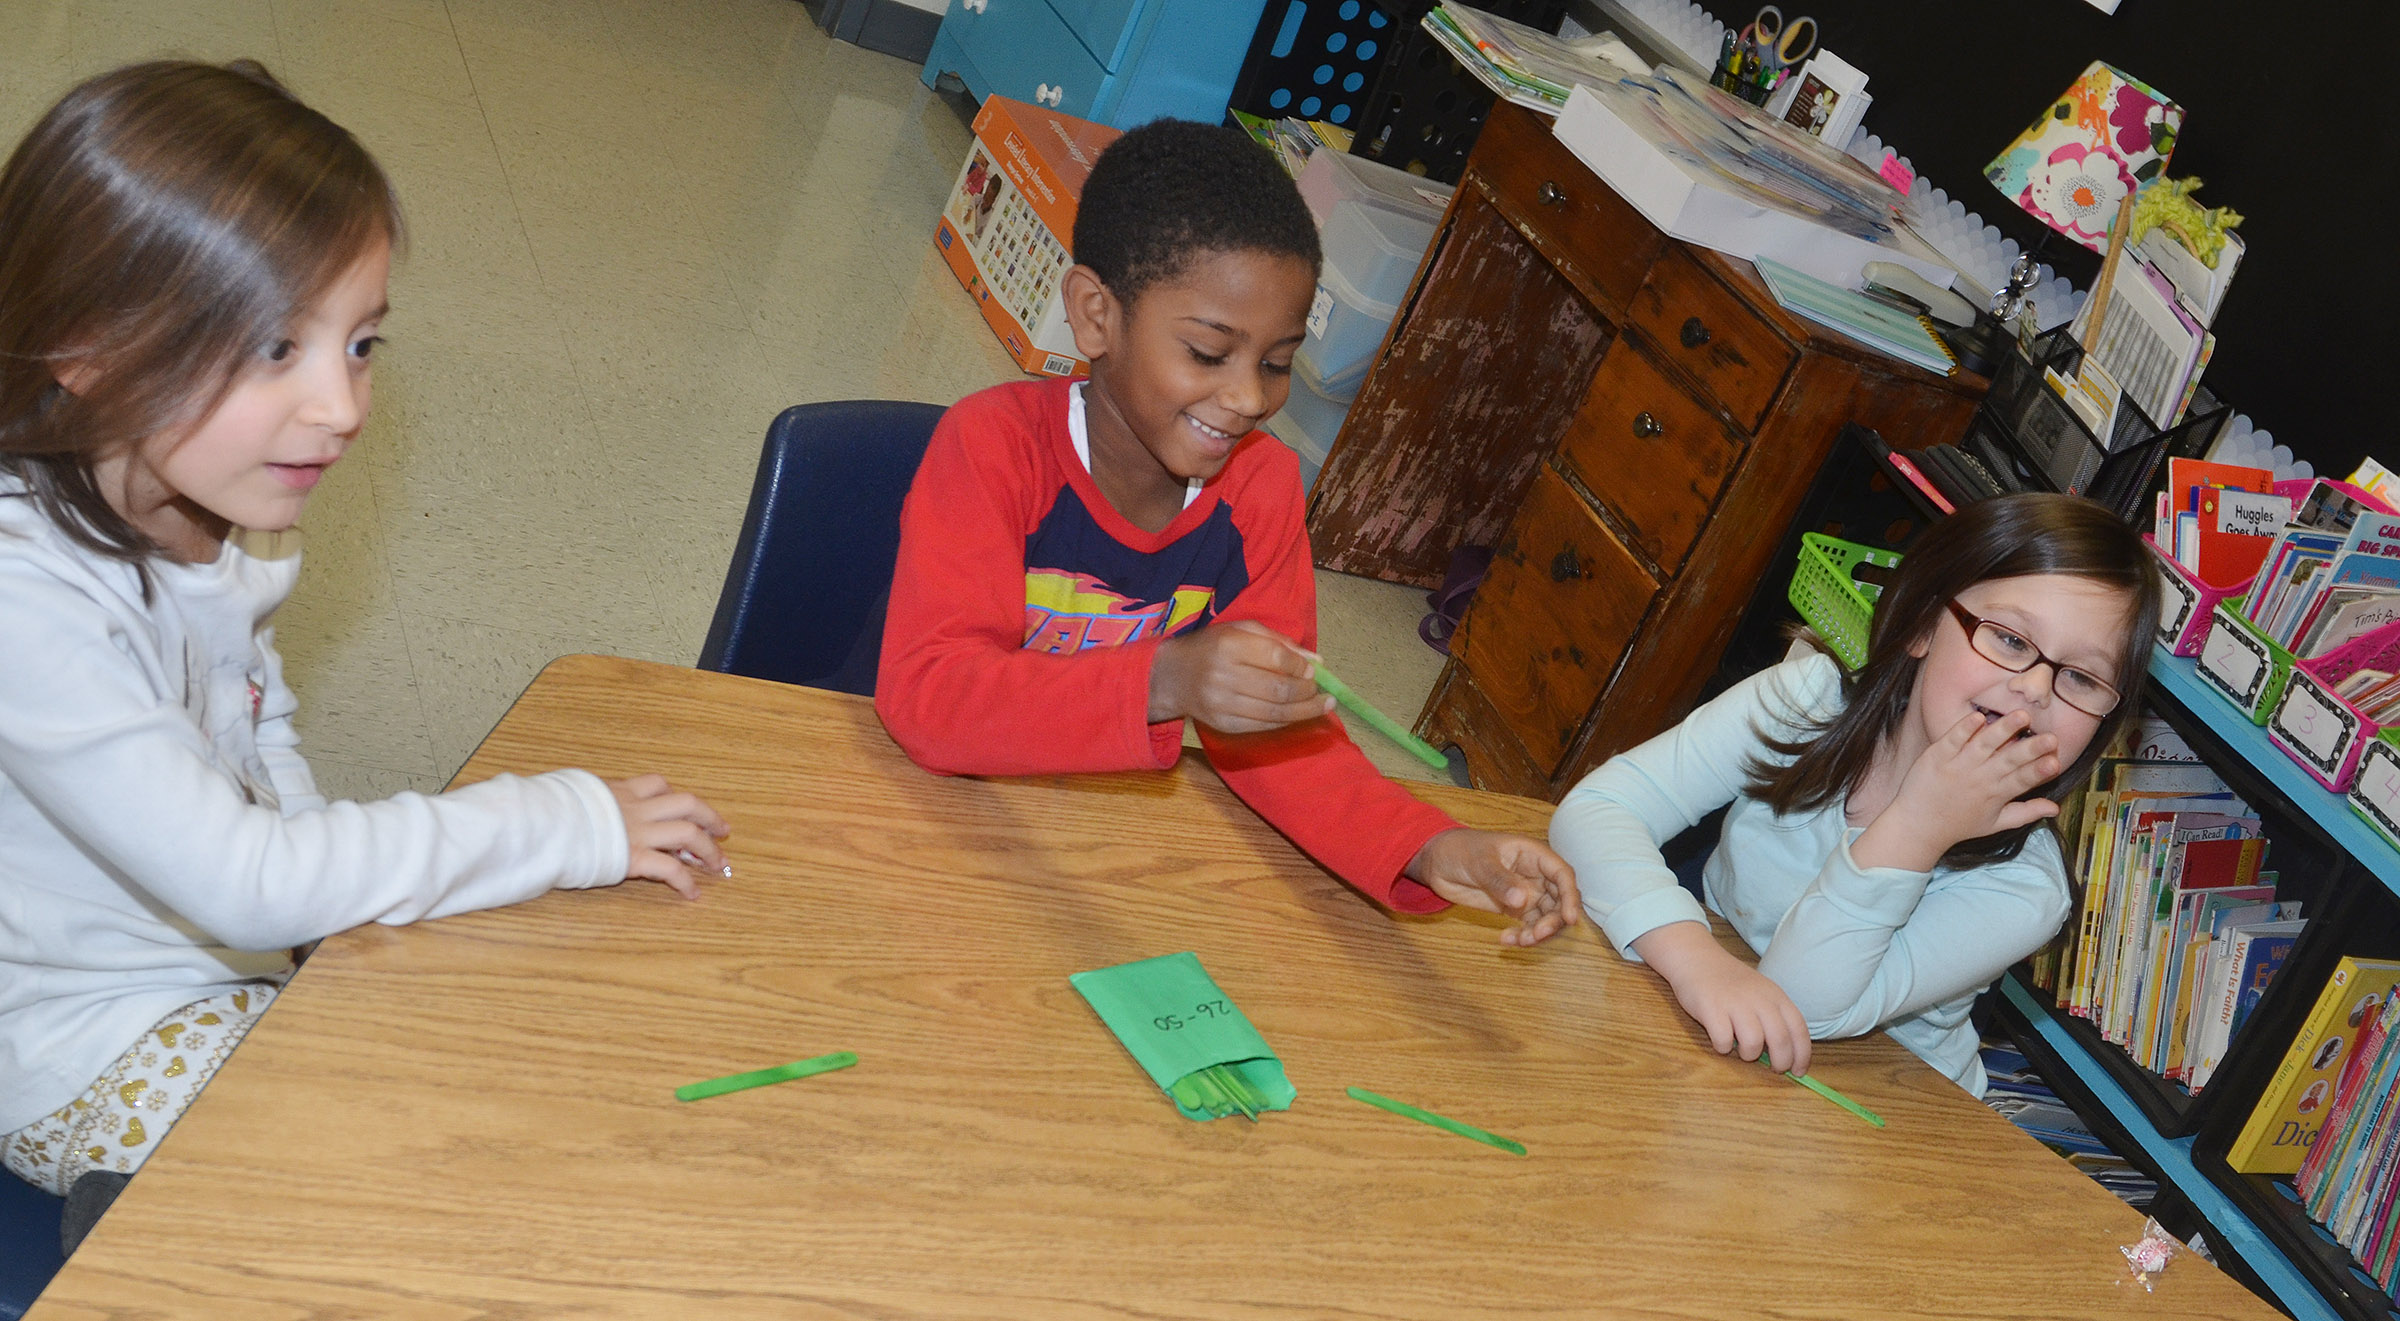 From left, CES first-graders Gabriella Tate, Kasen Smith and Trinity Clark play a word game together.